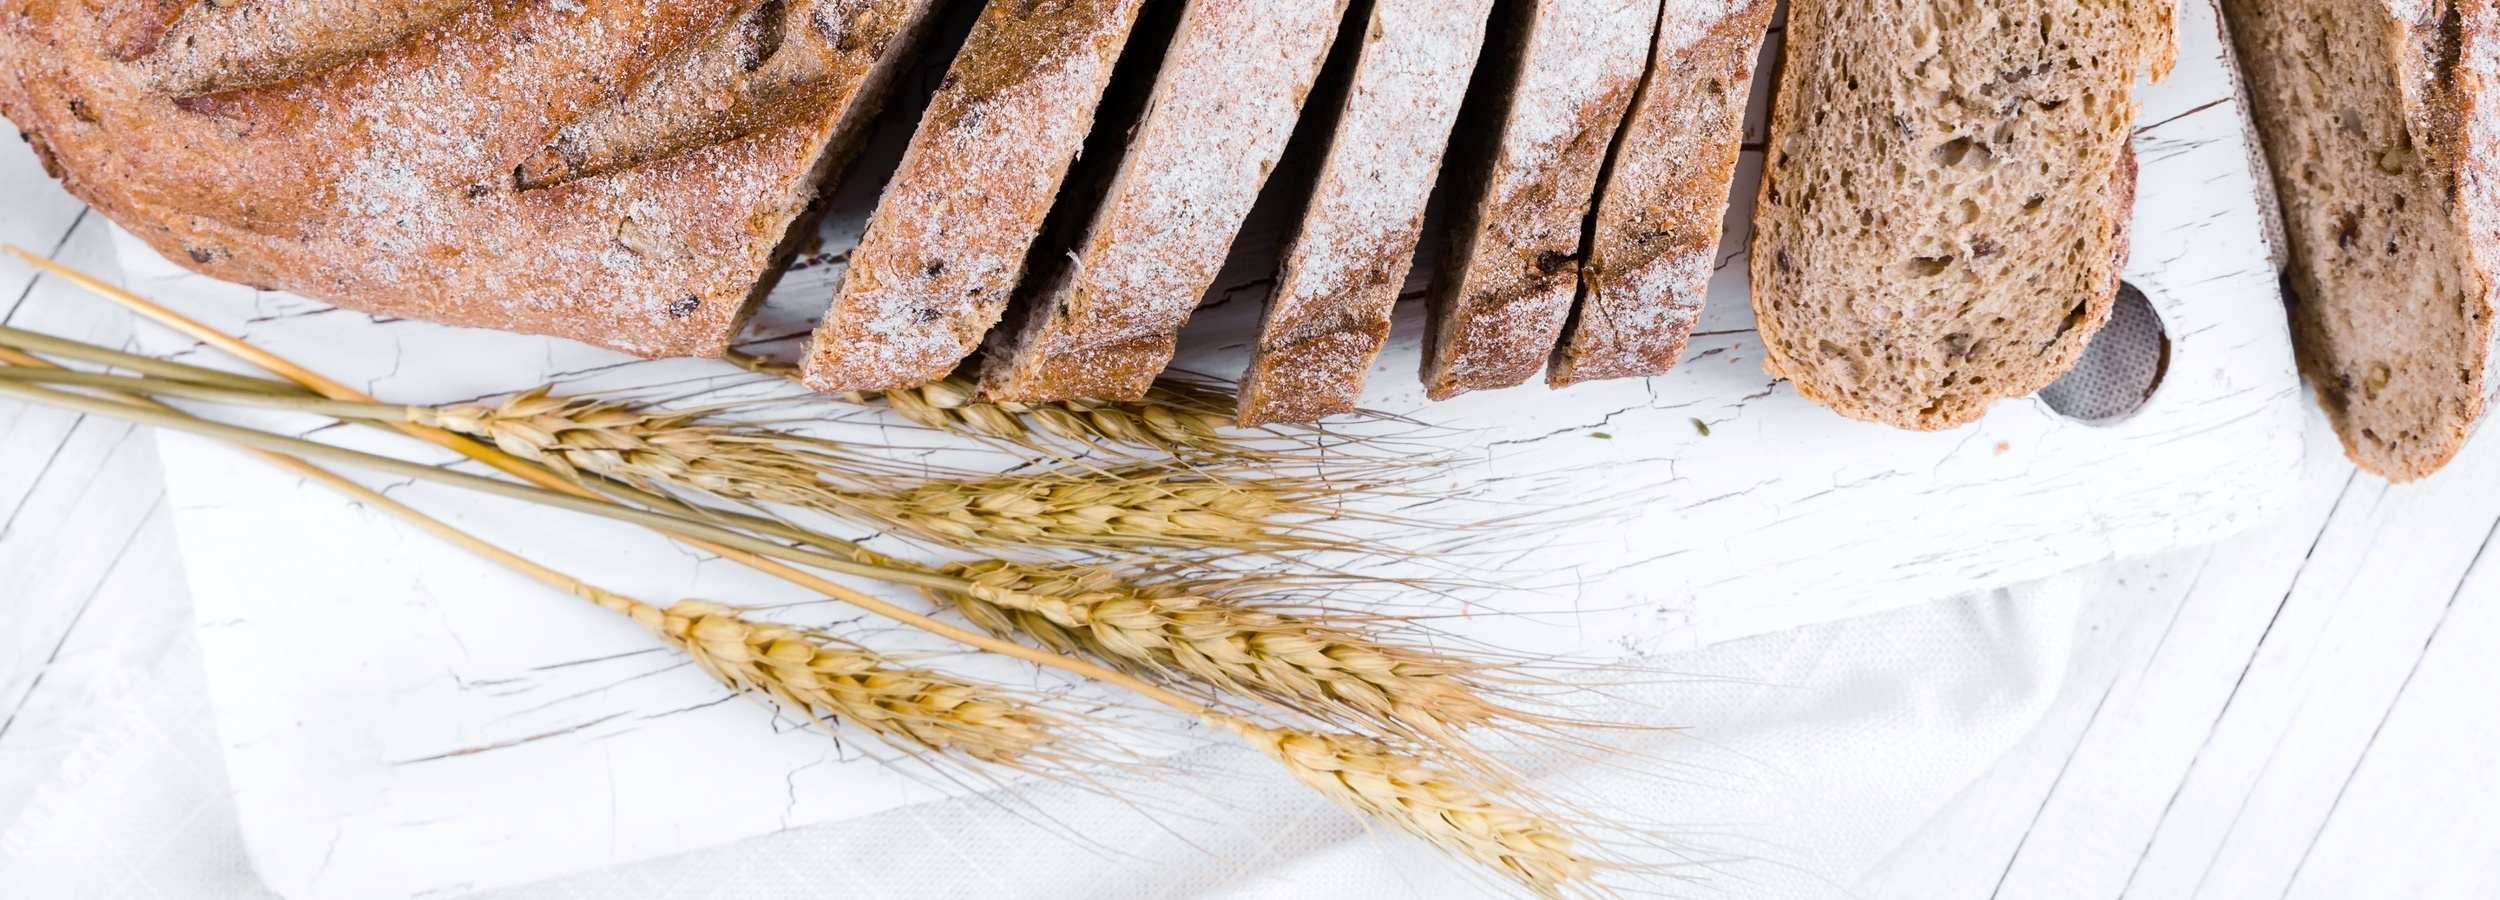 Does starch contain gluten?